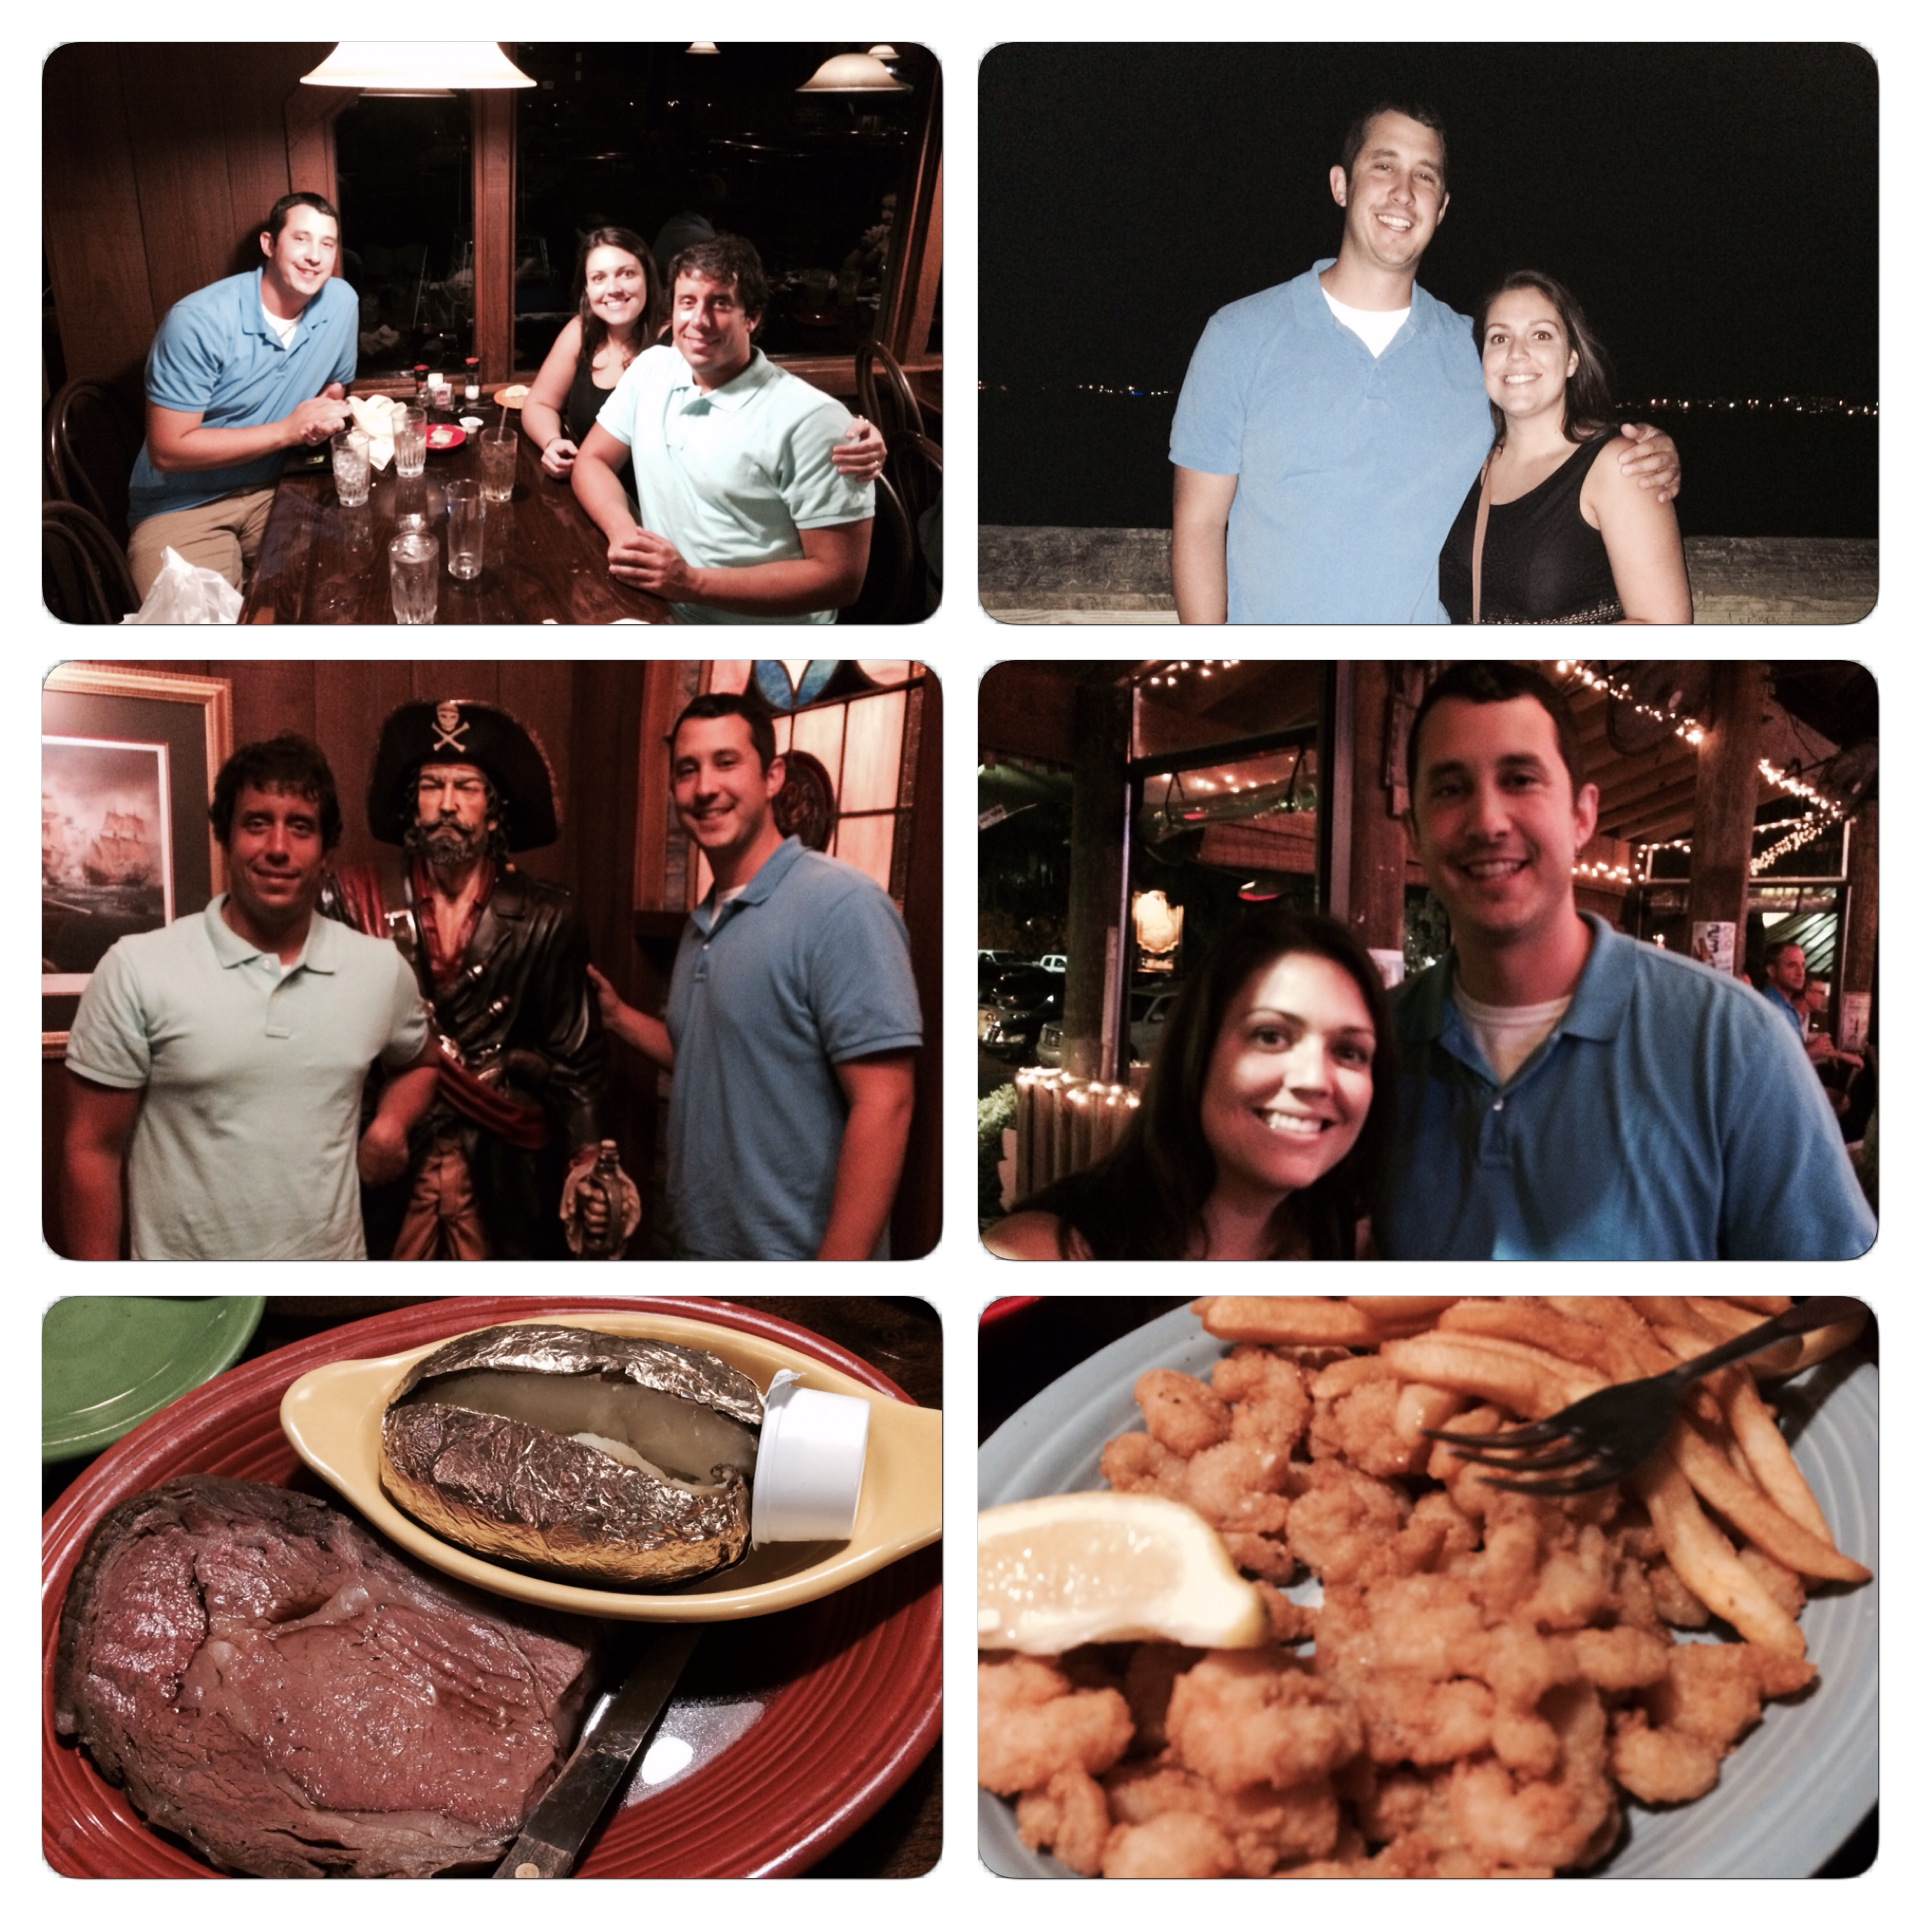 We had a wonderful evening in Murrells Inlet at the Marshwalk.